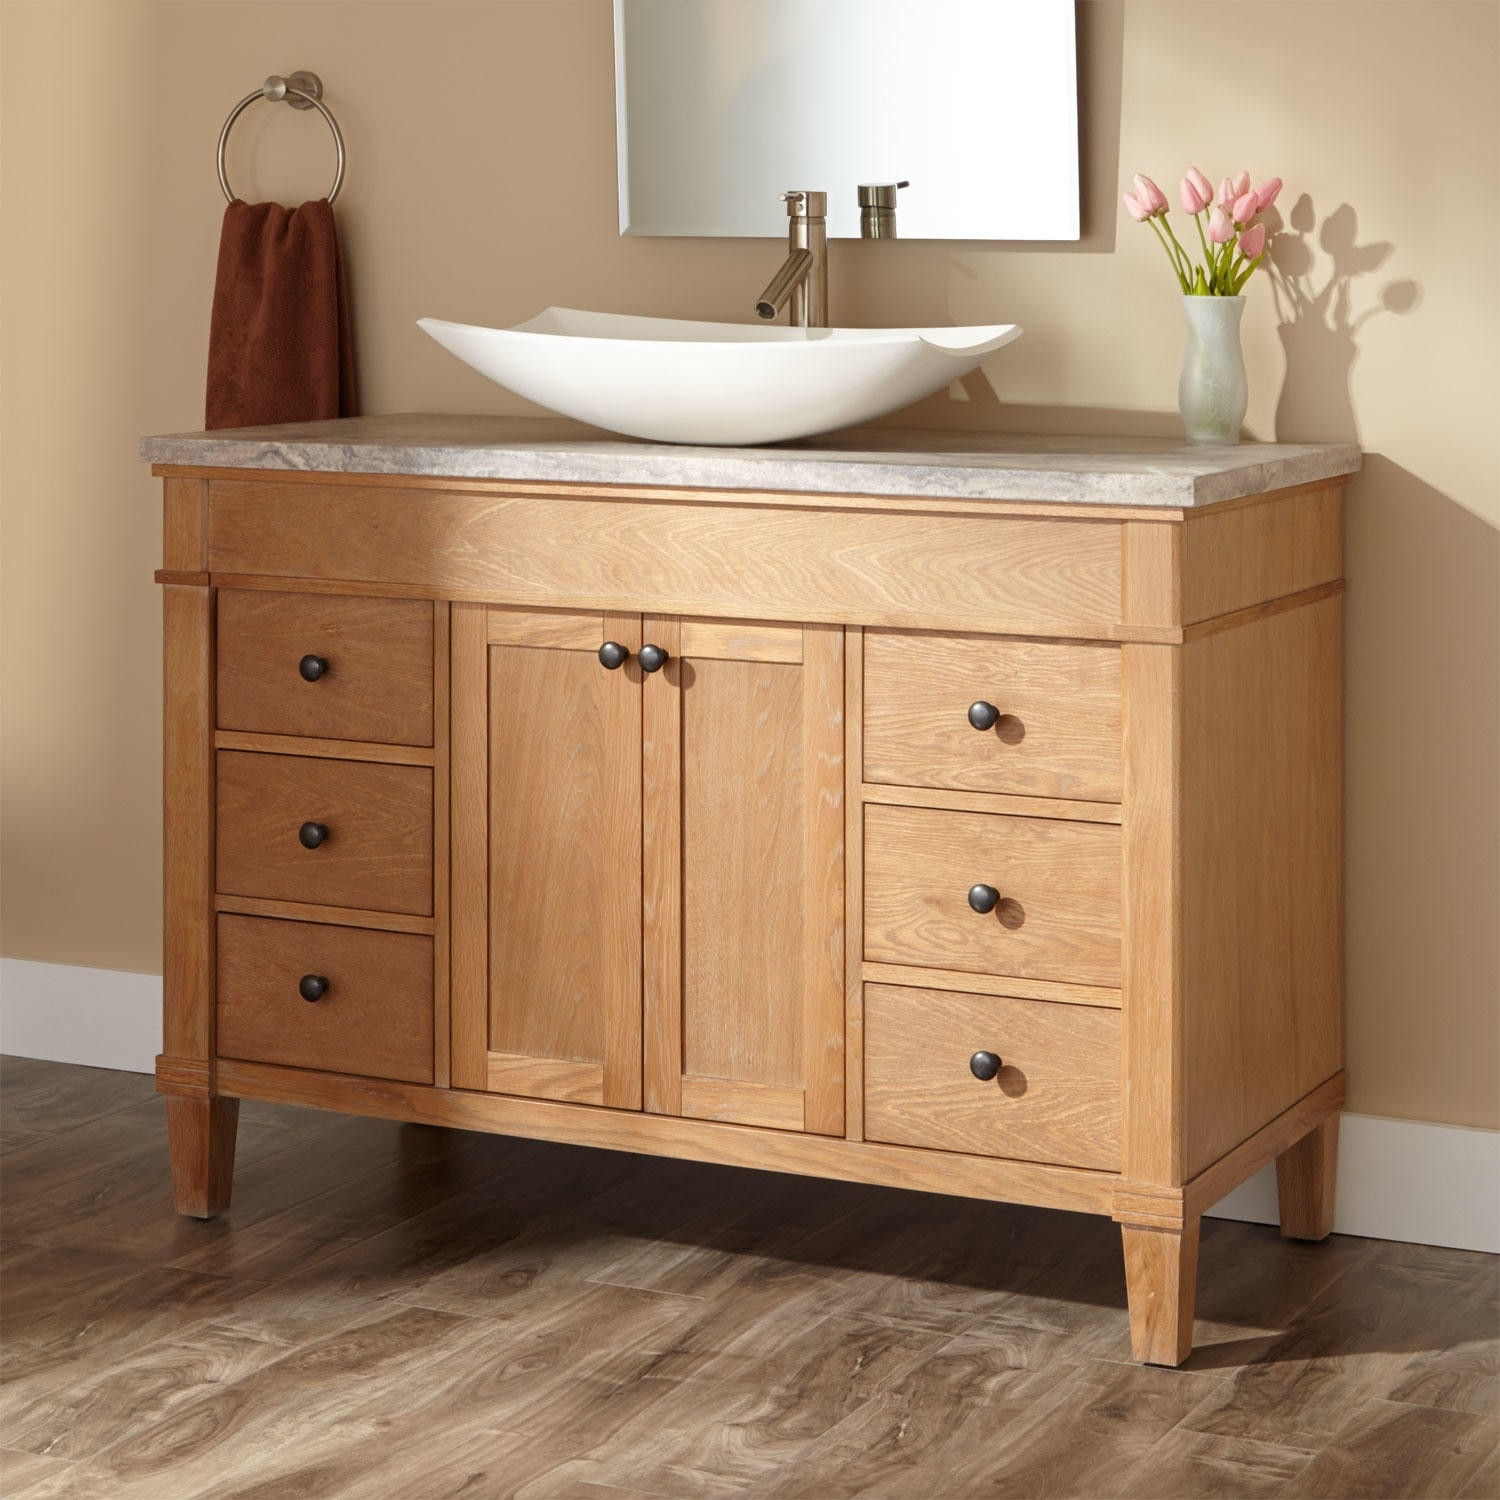 Permalink to Bathroom Cabinets And Sink Combo